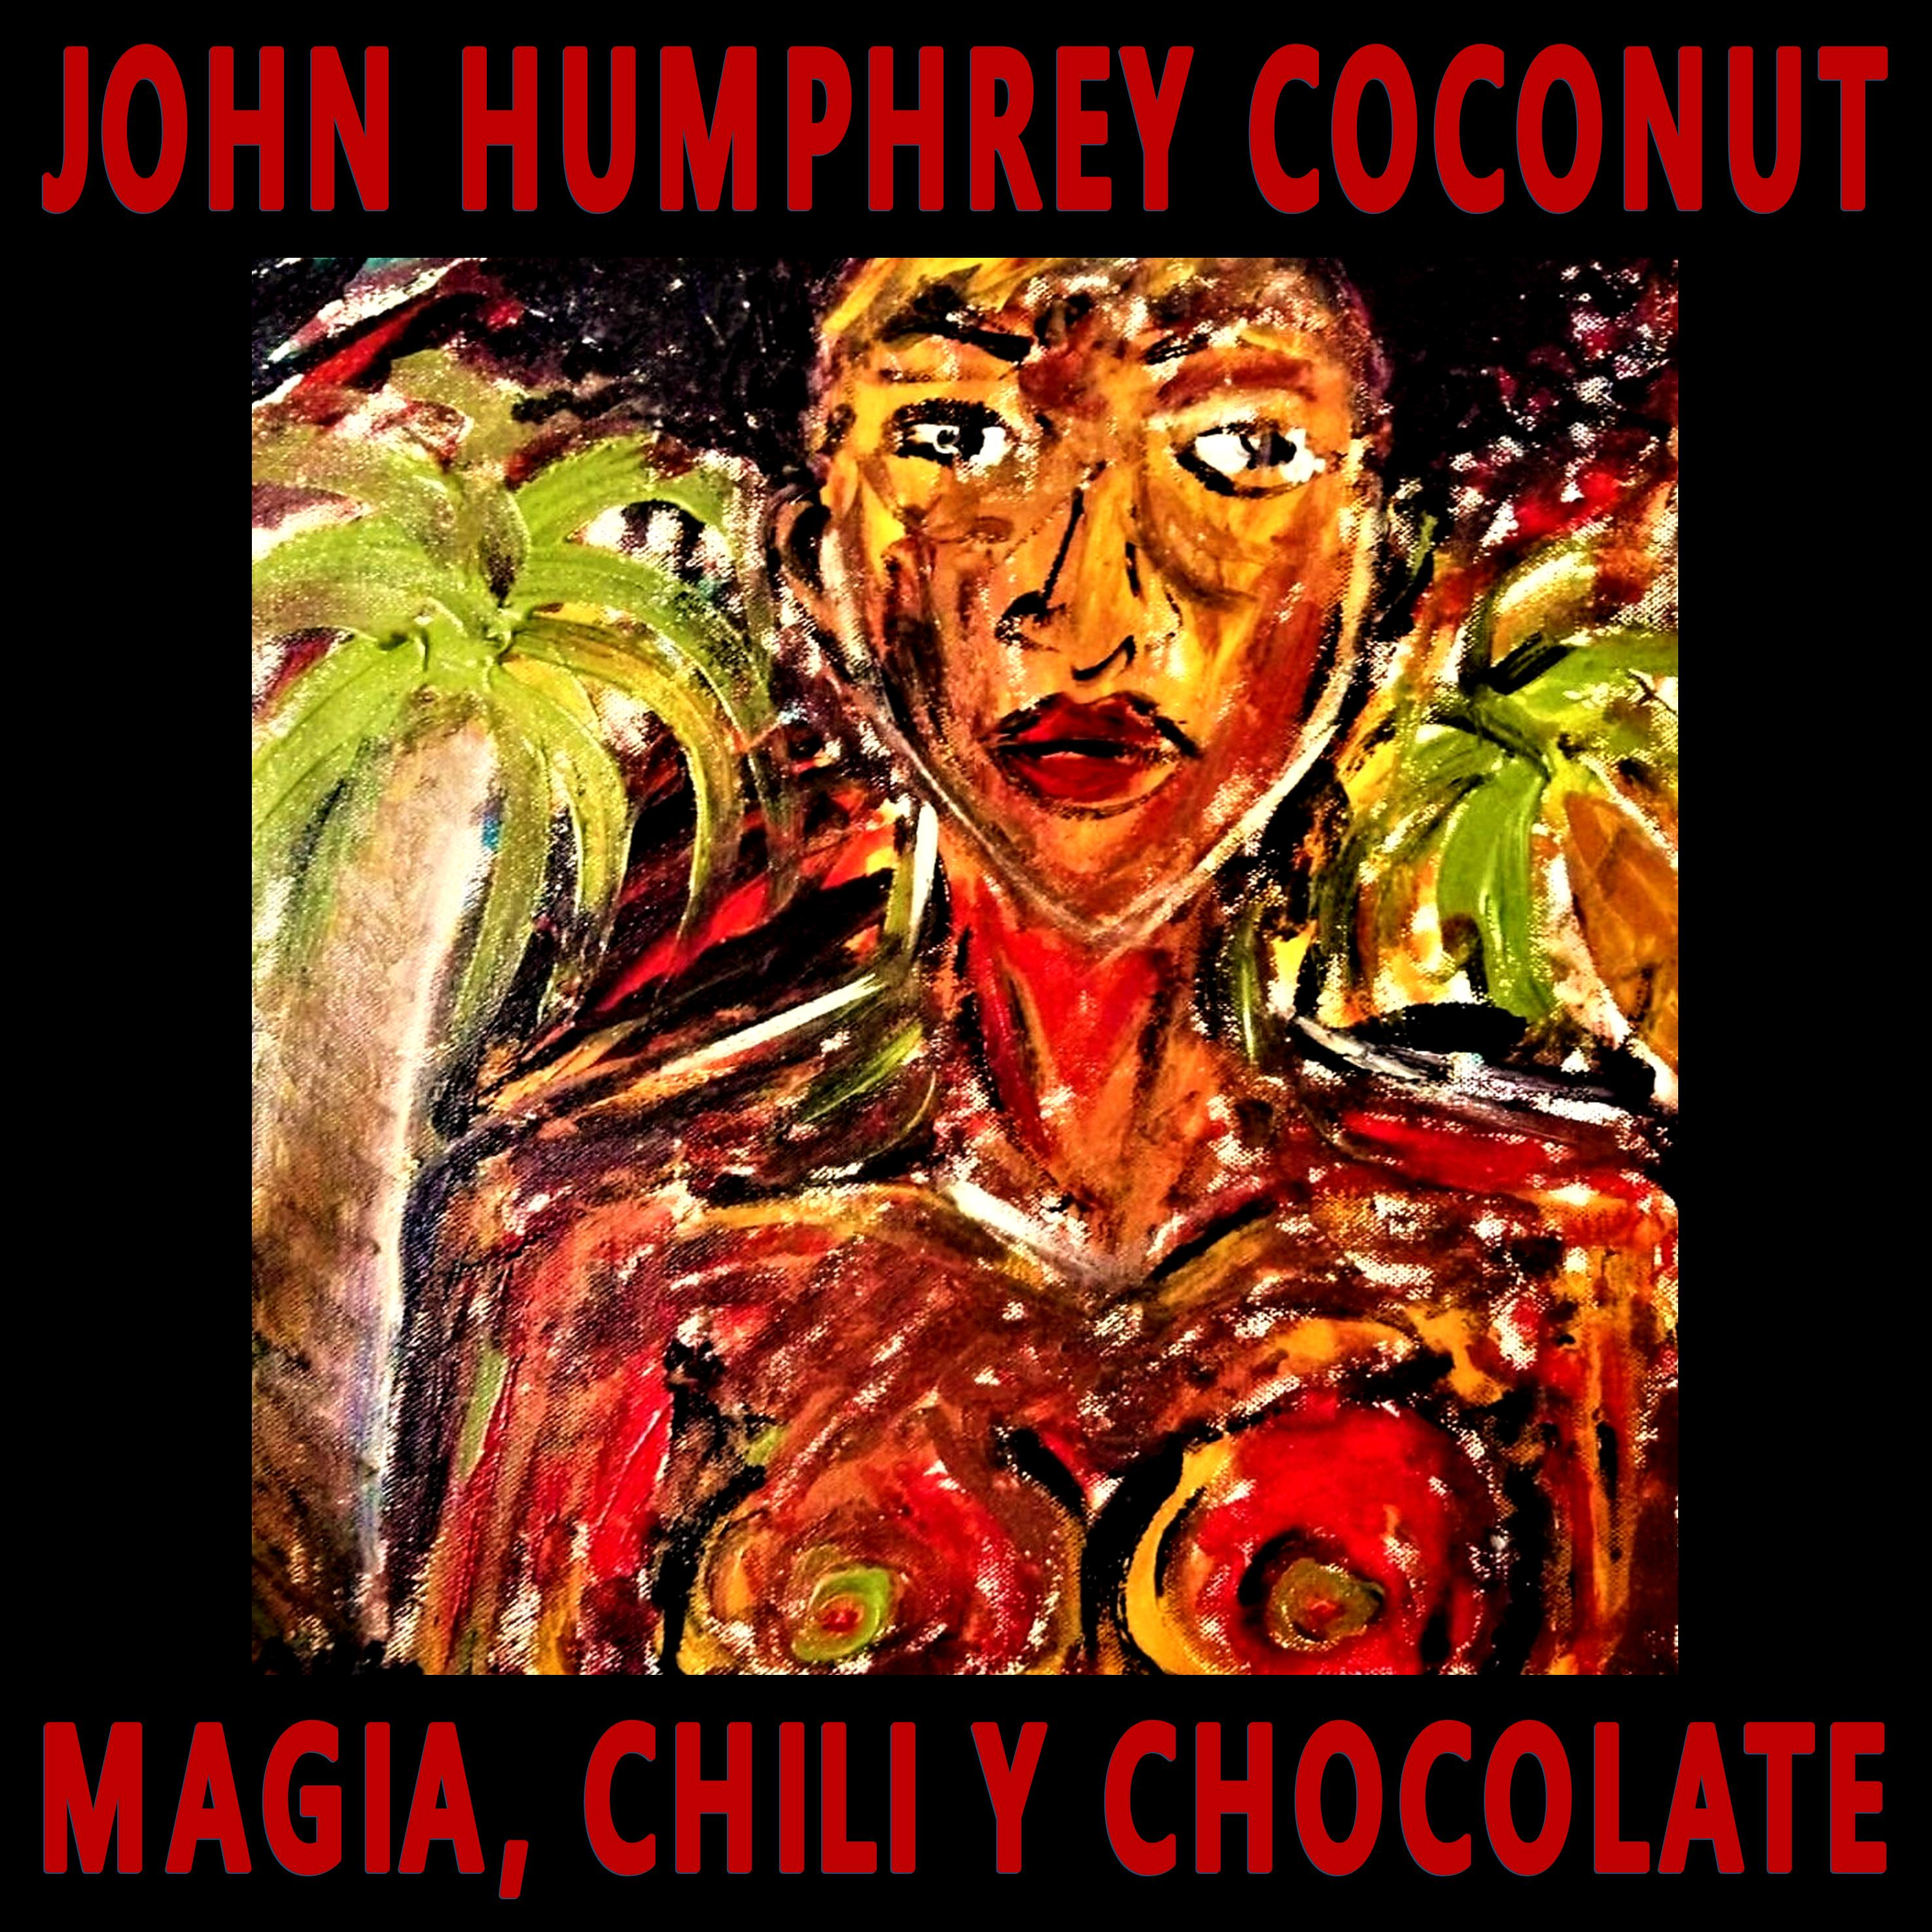 John Humphrey Coconut · Magia, Chili y Chocolate